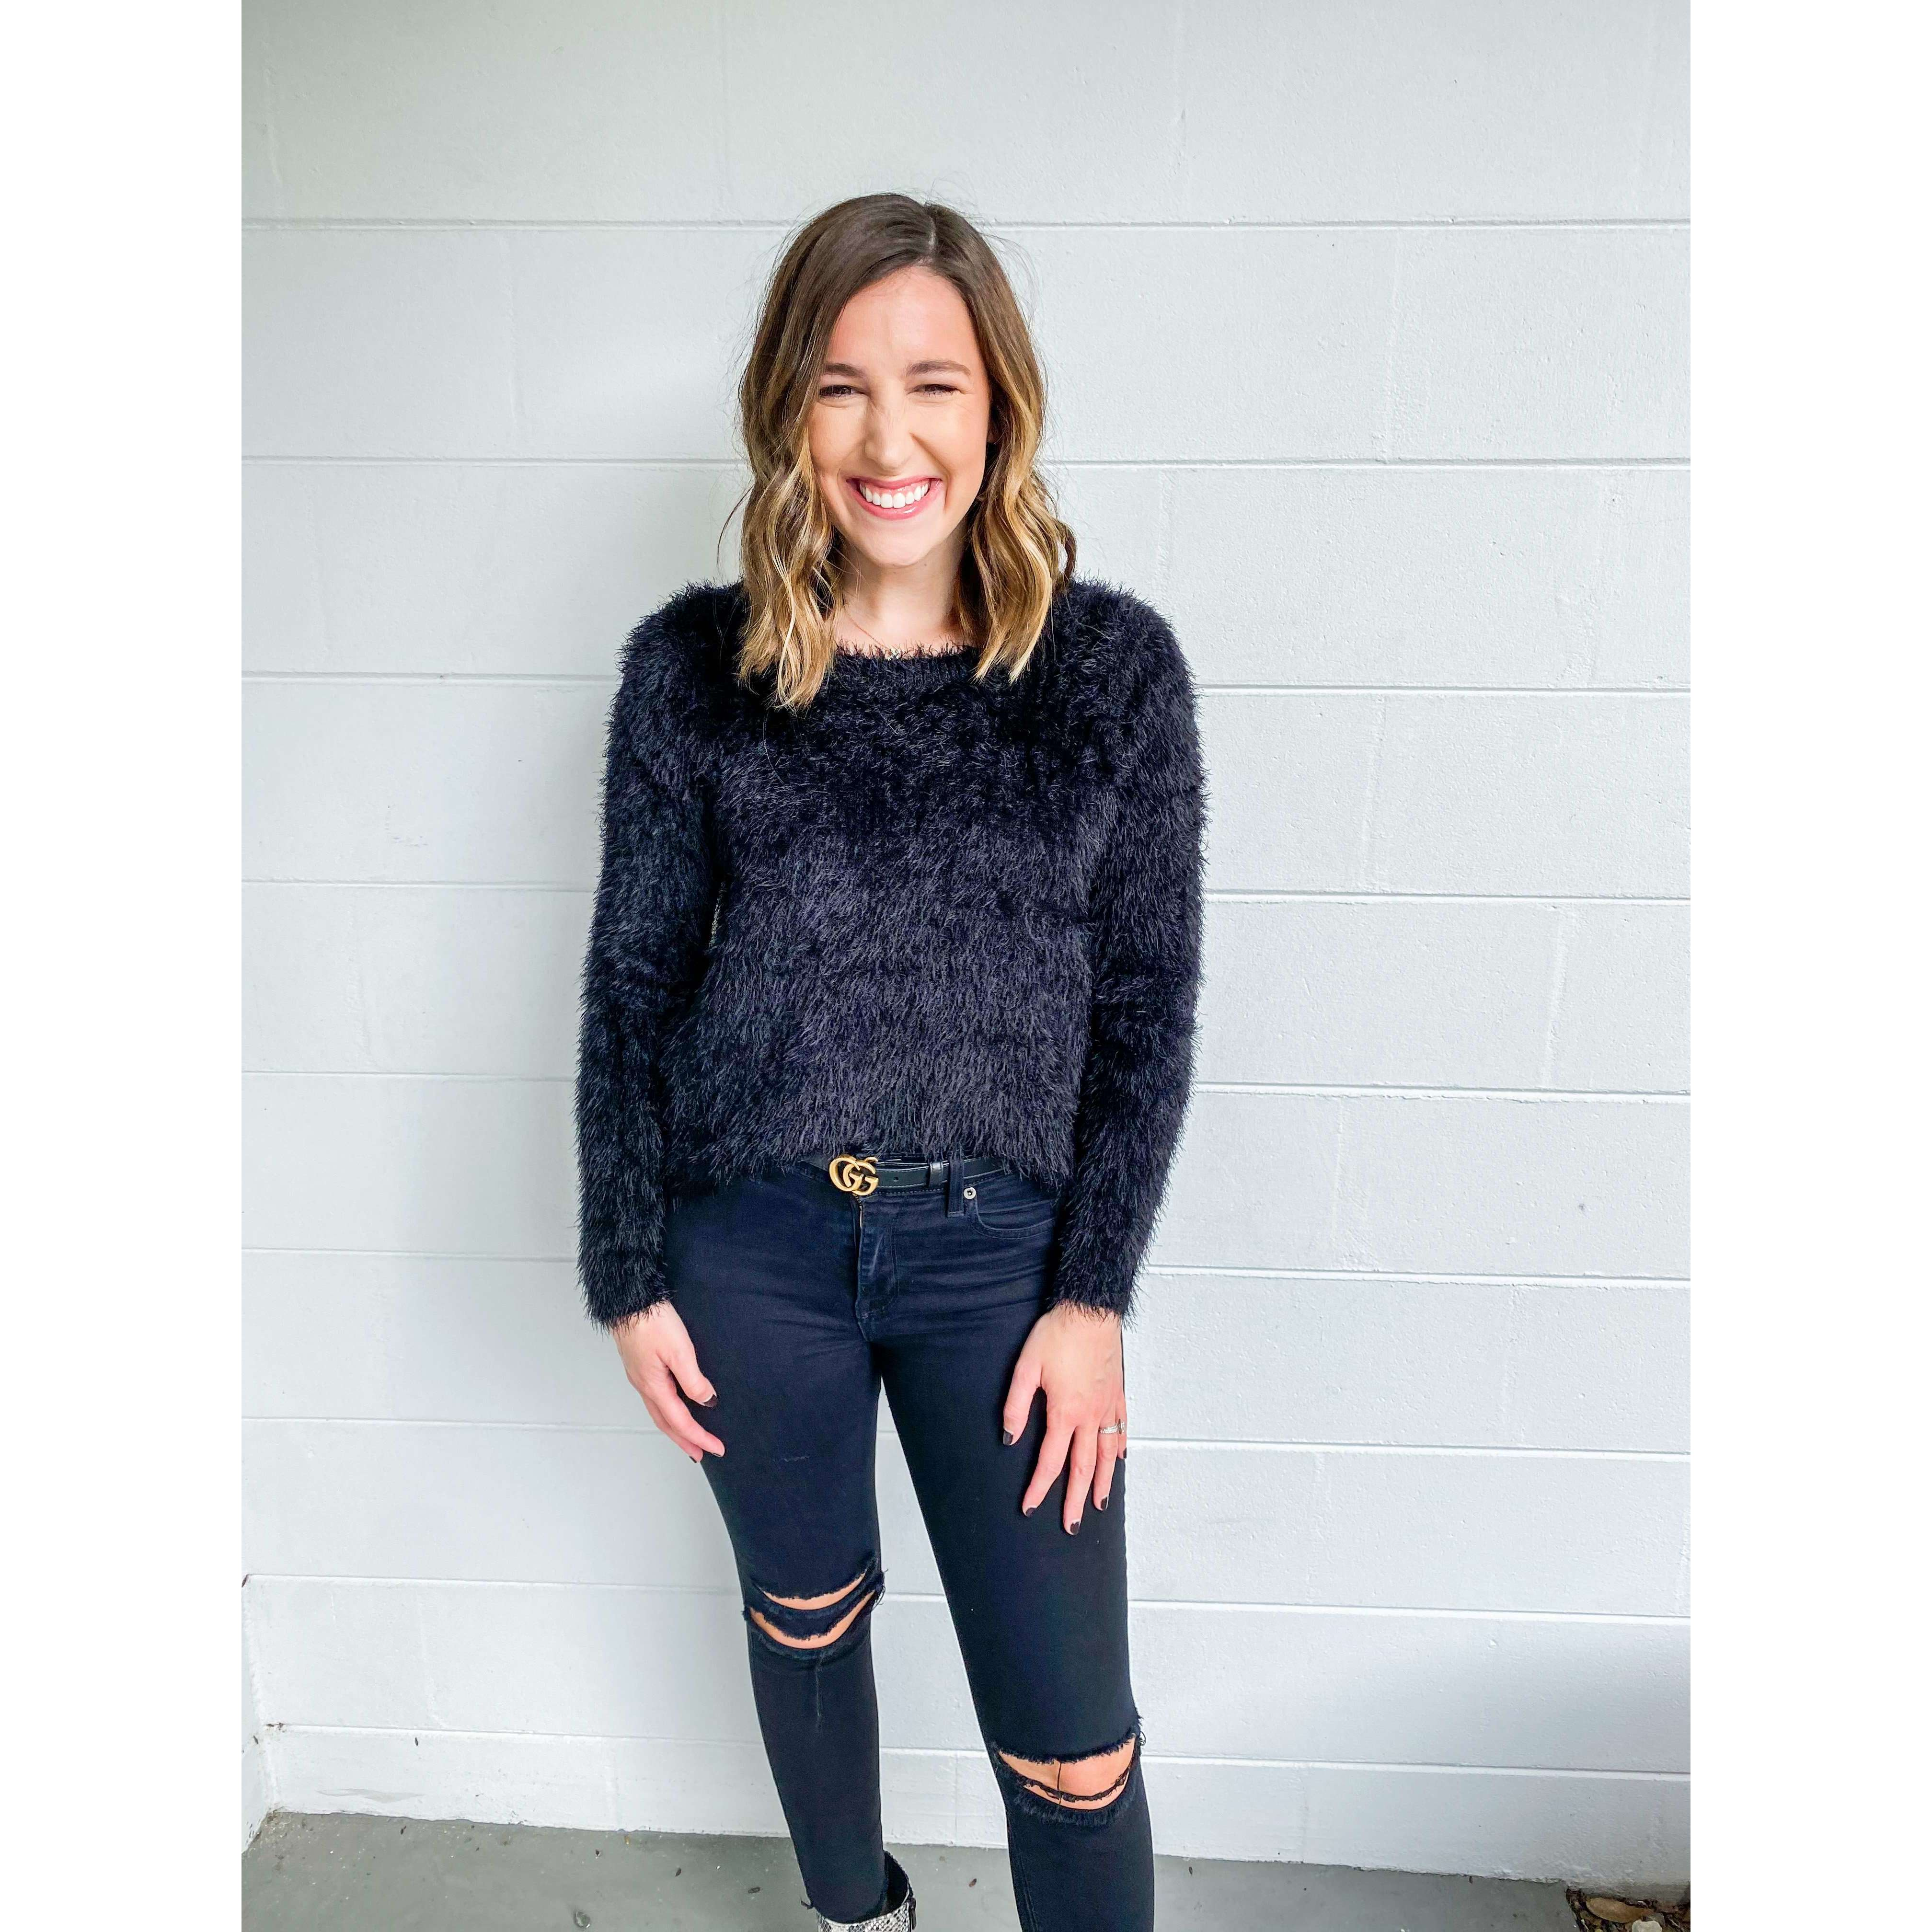 8.28 Boutique:Sadie & Sage,Sadie & Sage Kari Furry Sweater in Black,Sweaters